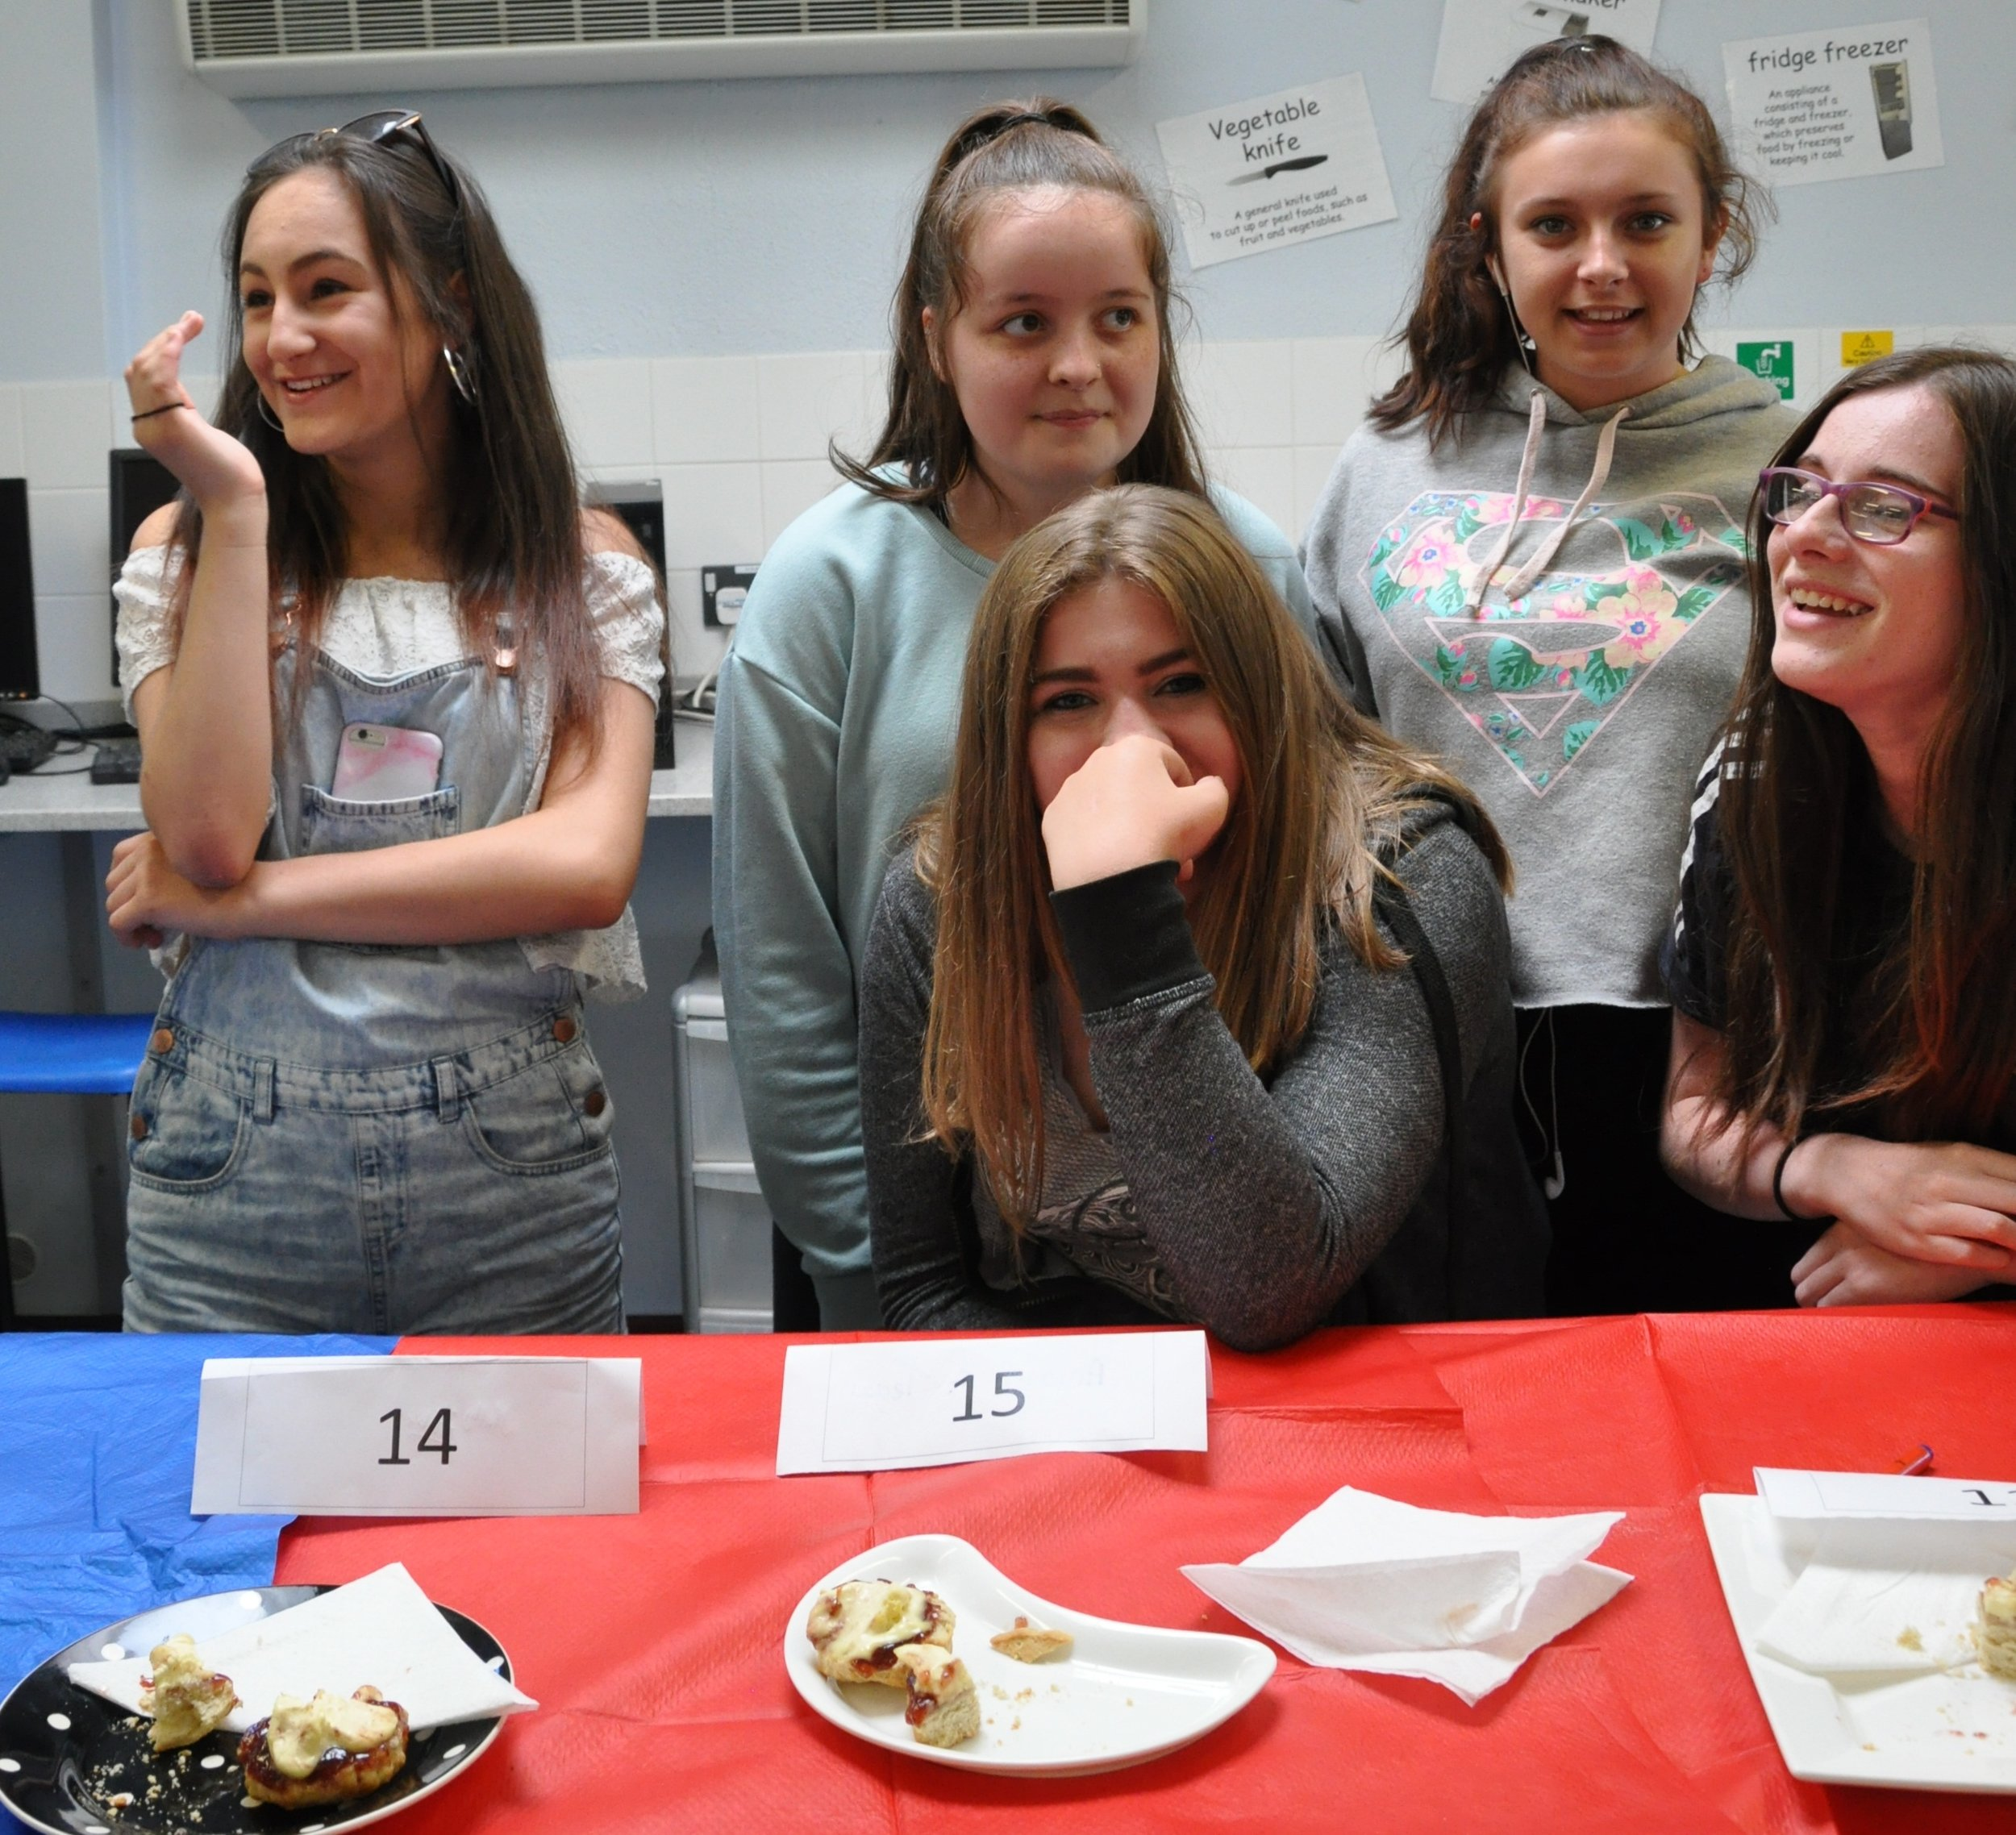 Well done to the students who came in second.